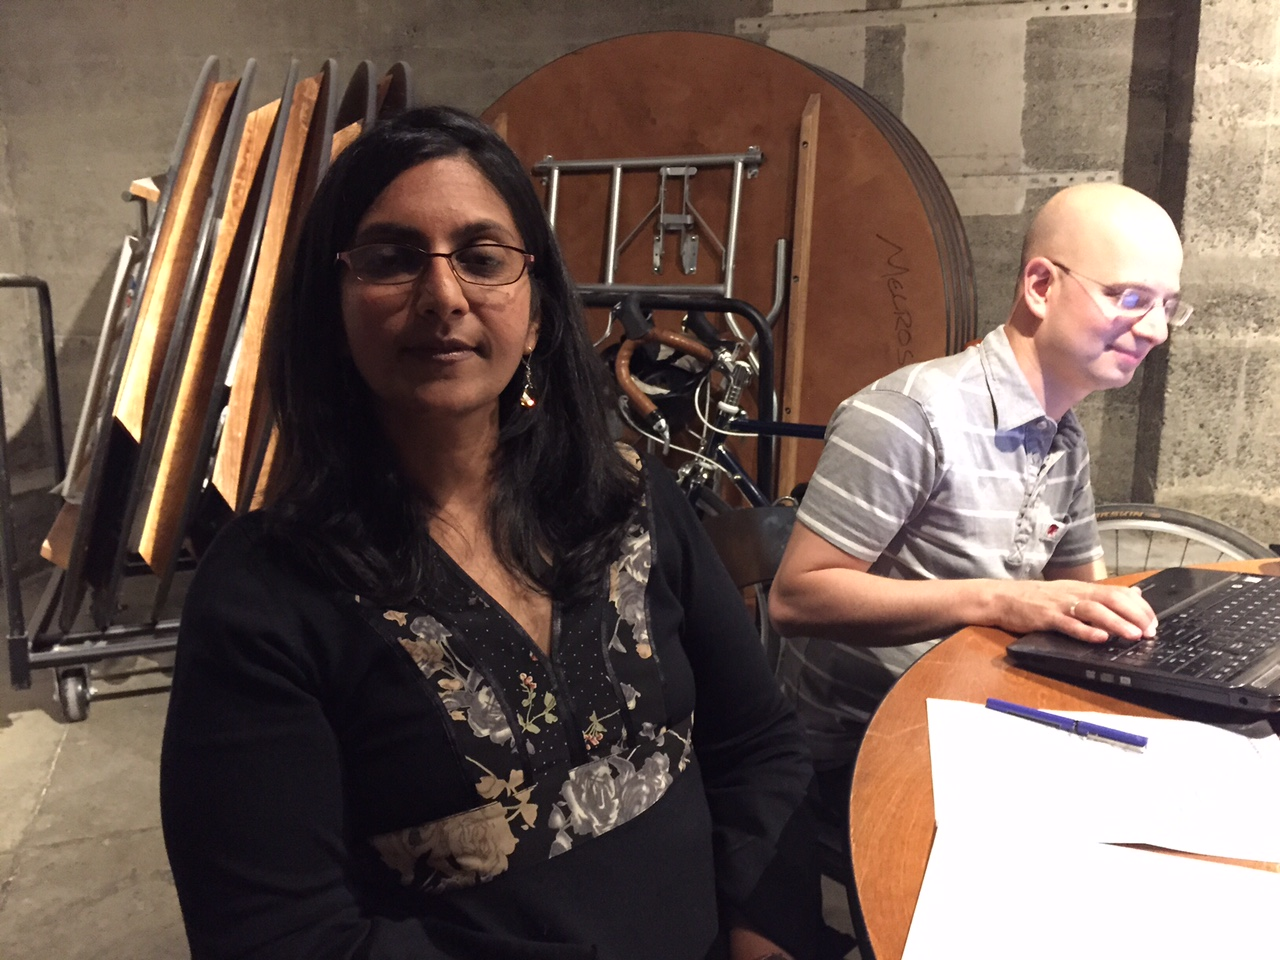 The SECB Scored a Quick Sit-Down With CM Sawant